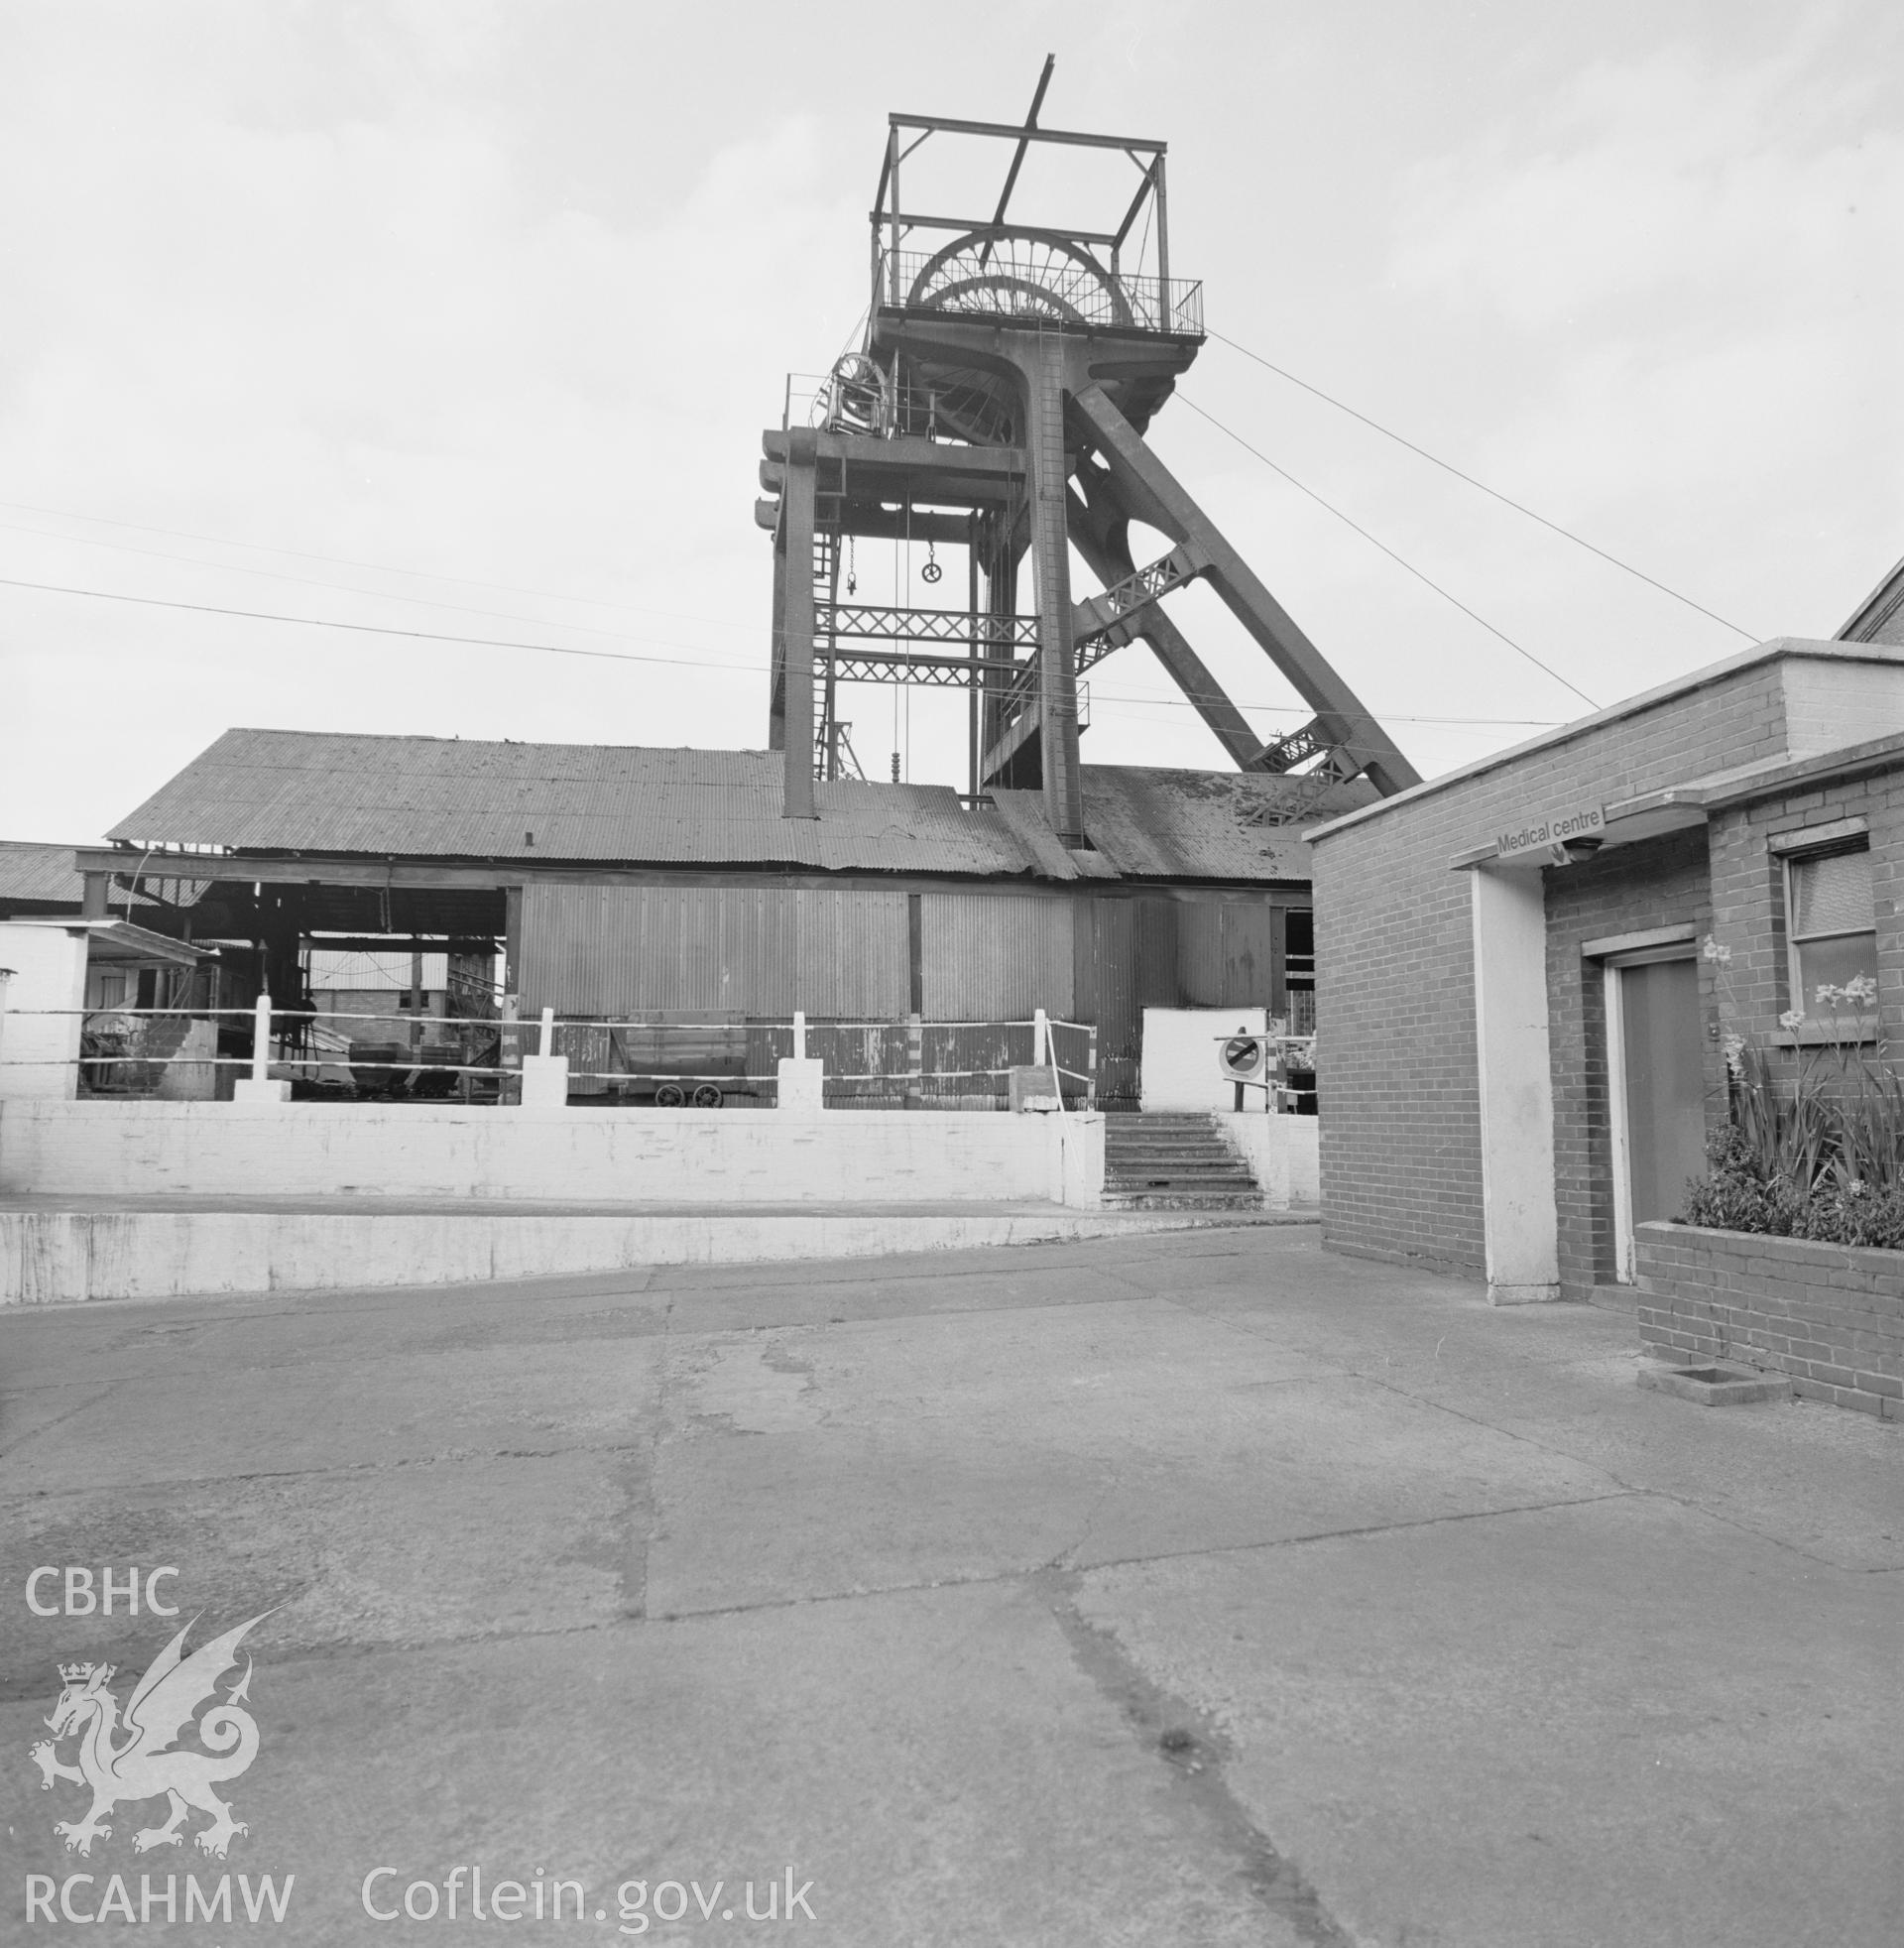 Digital copy of an acetate negative showing general view of Blaenserchan Colliery, from the John Cornwell Collection.